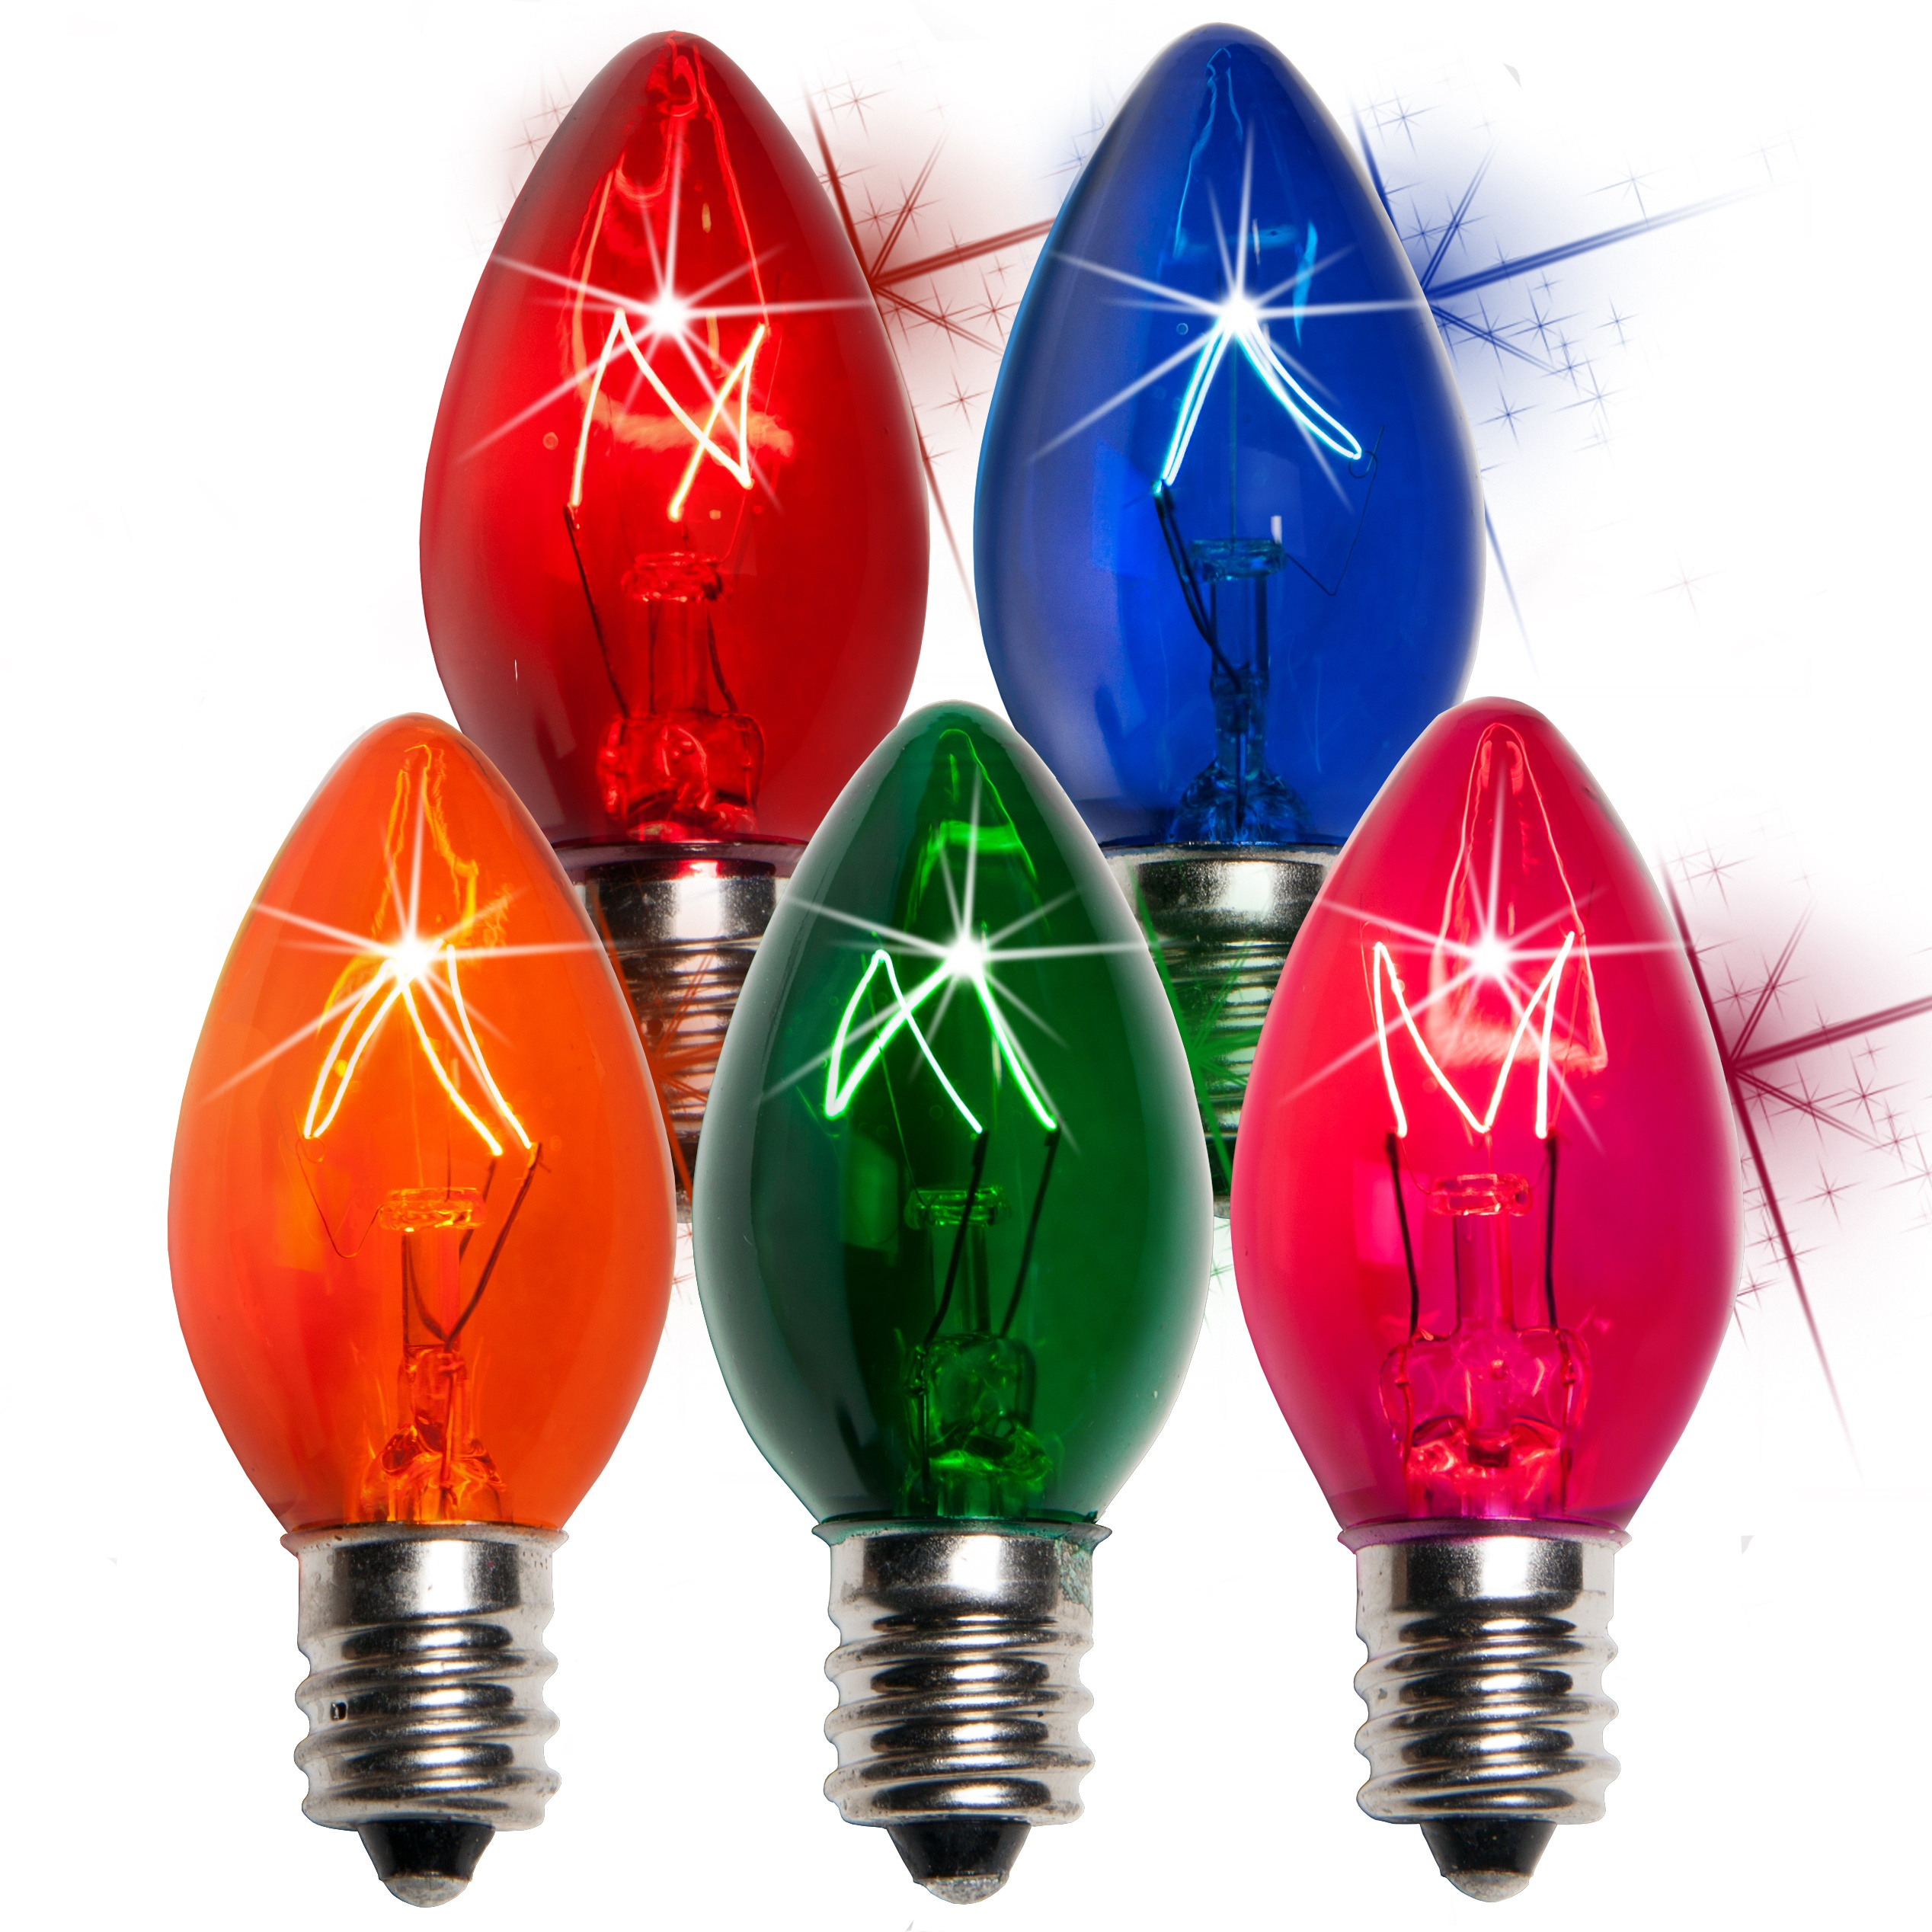 c7 christmas light bulb c7 twinkle multicolor christmas light bulbs 7 watt - Blinking Led Christmas Lights